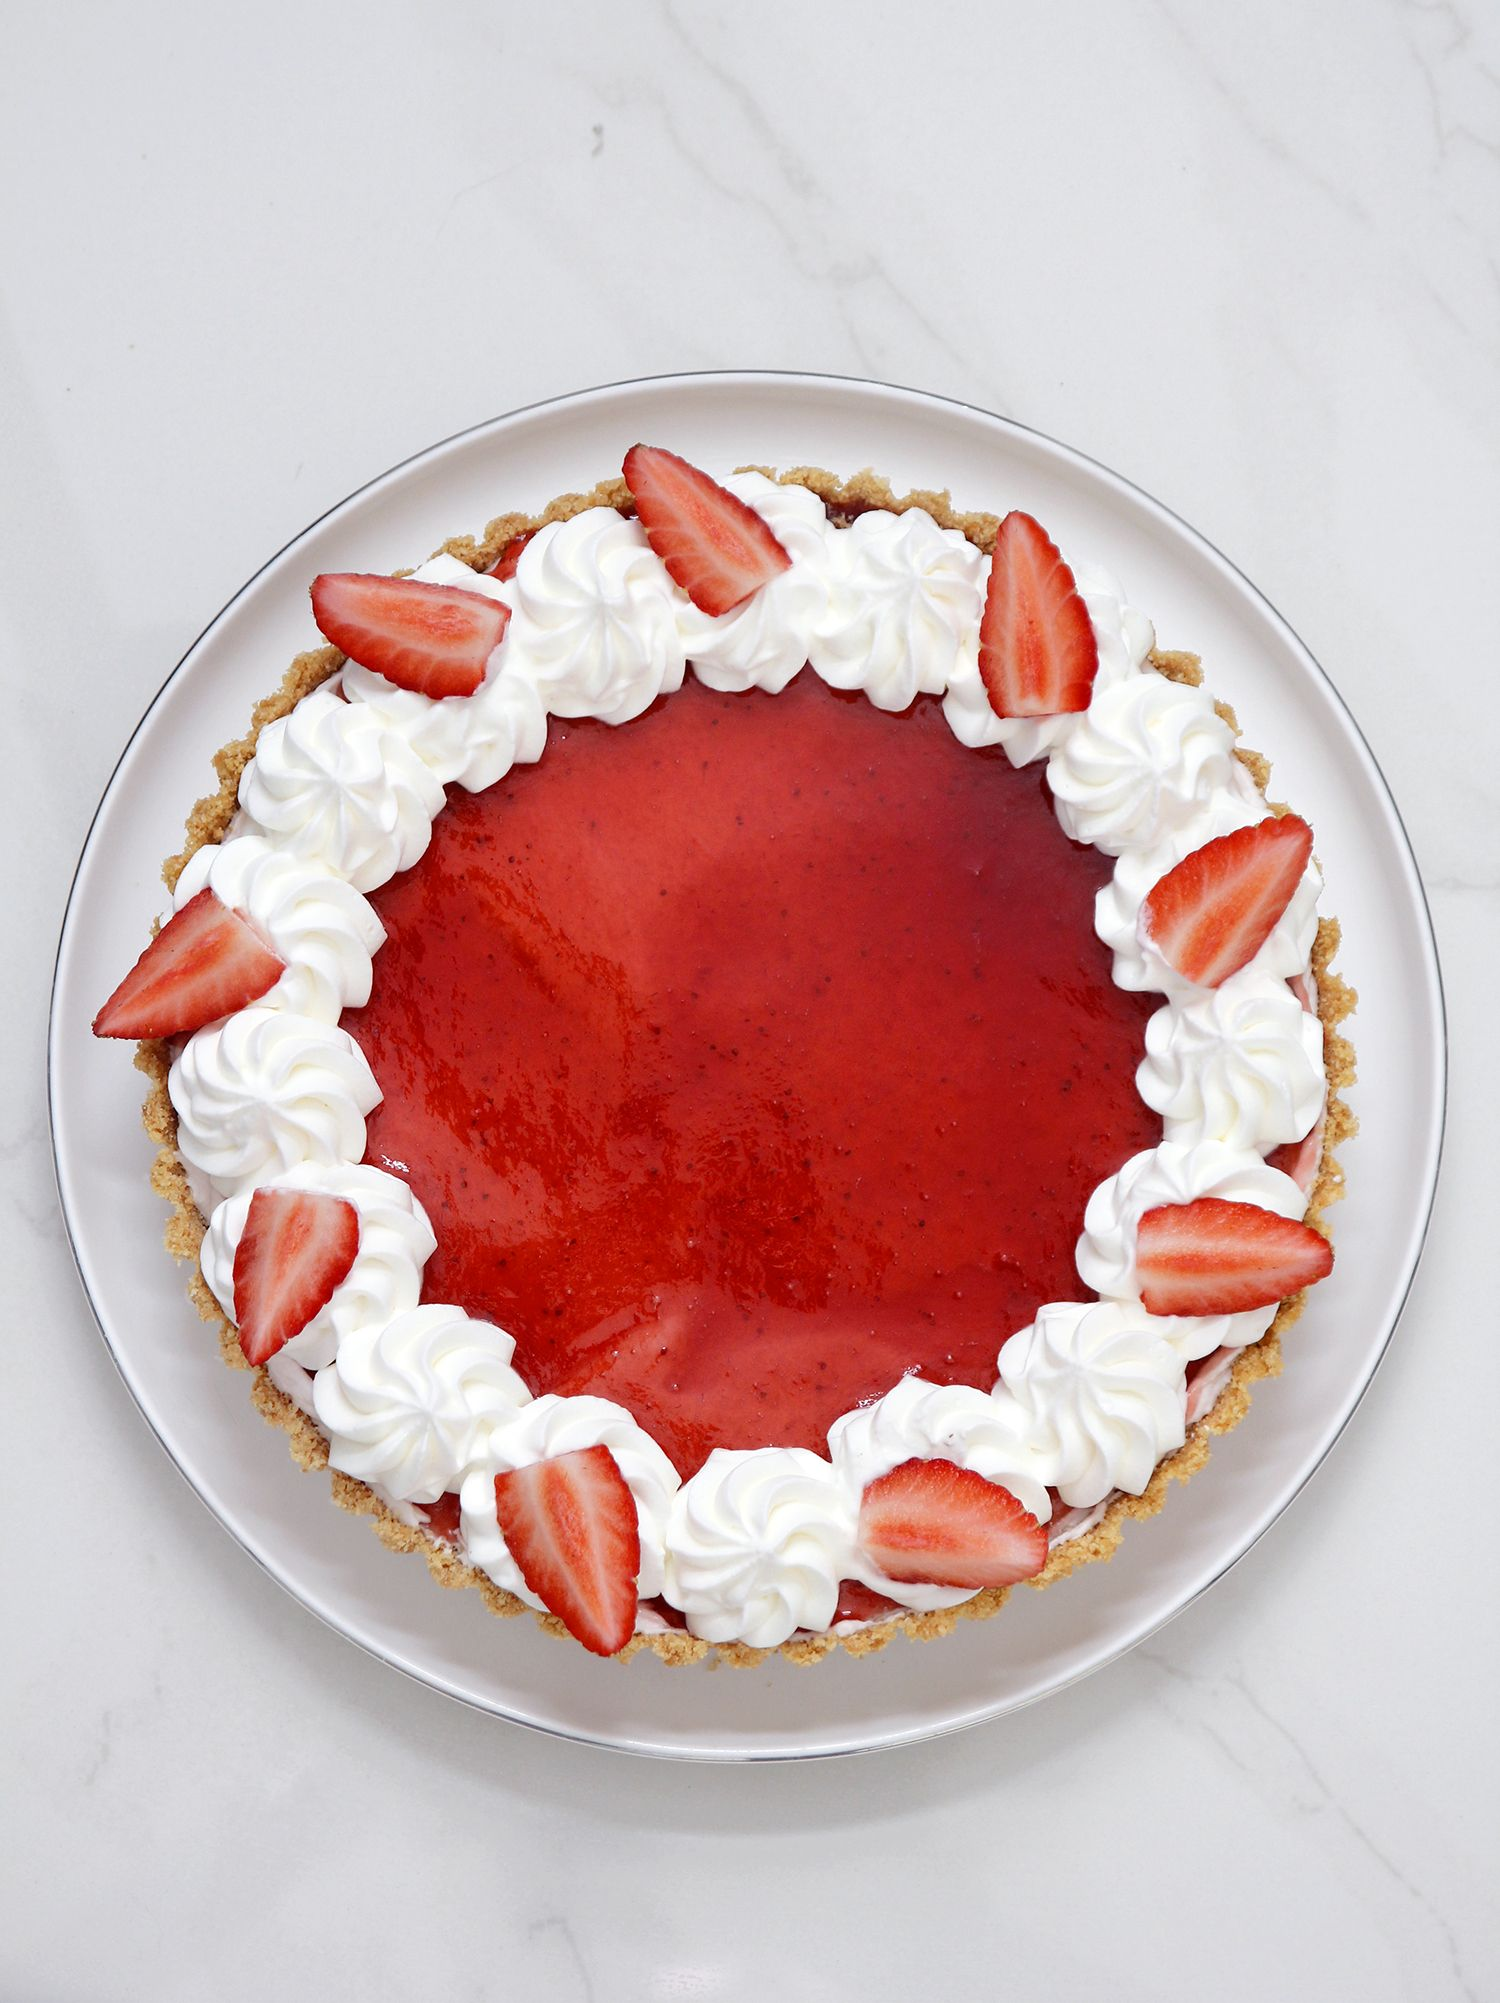 for White chocolate and strawberry tart